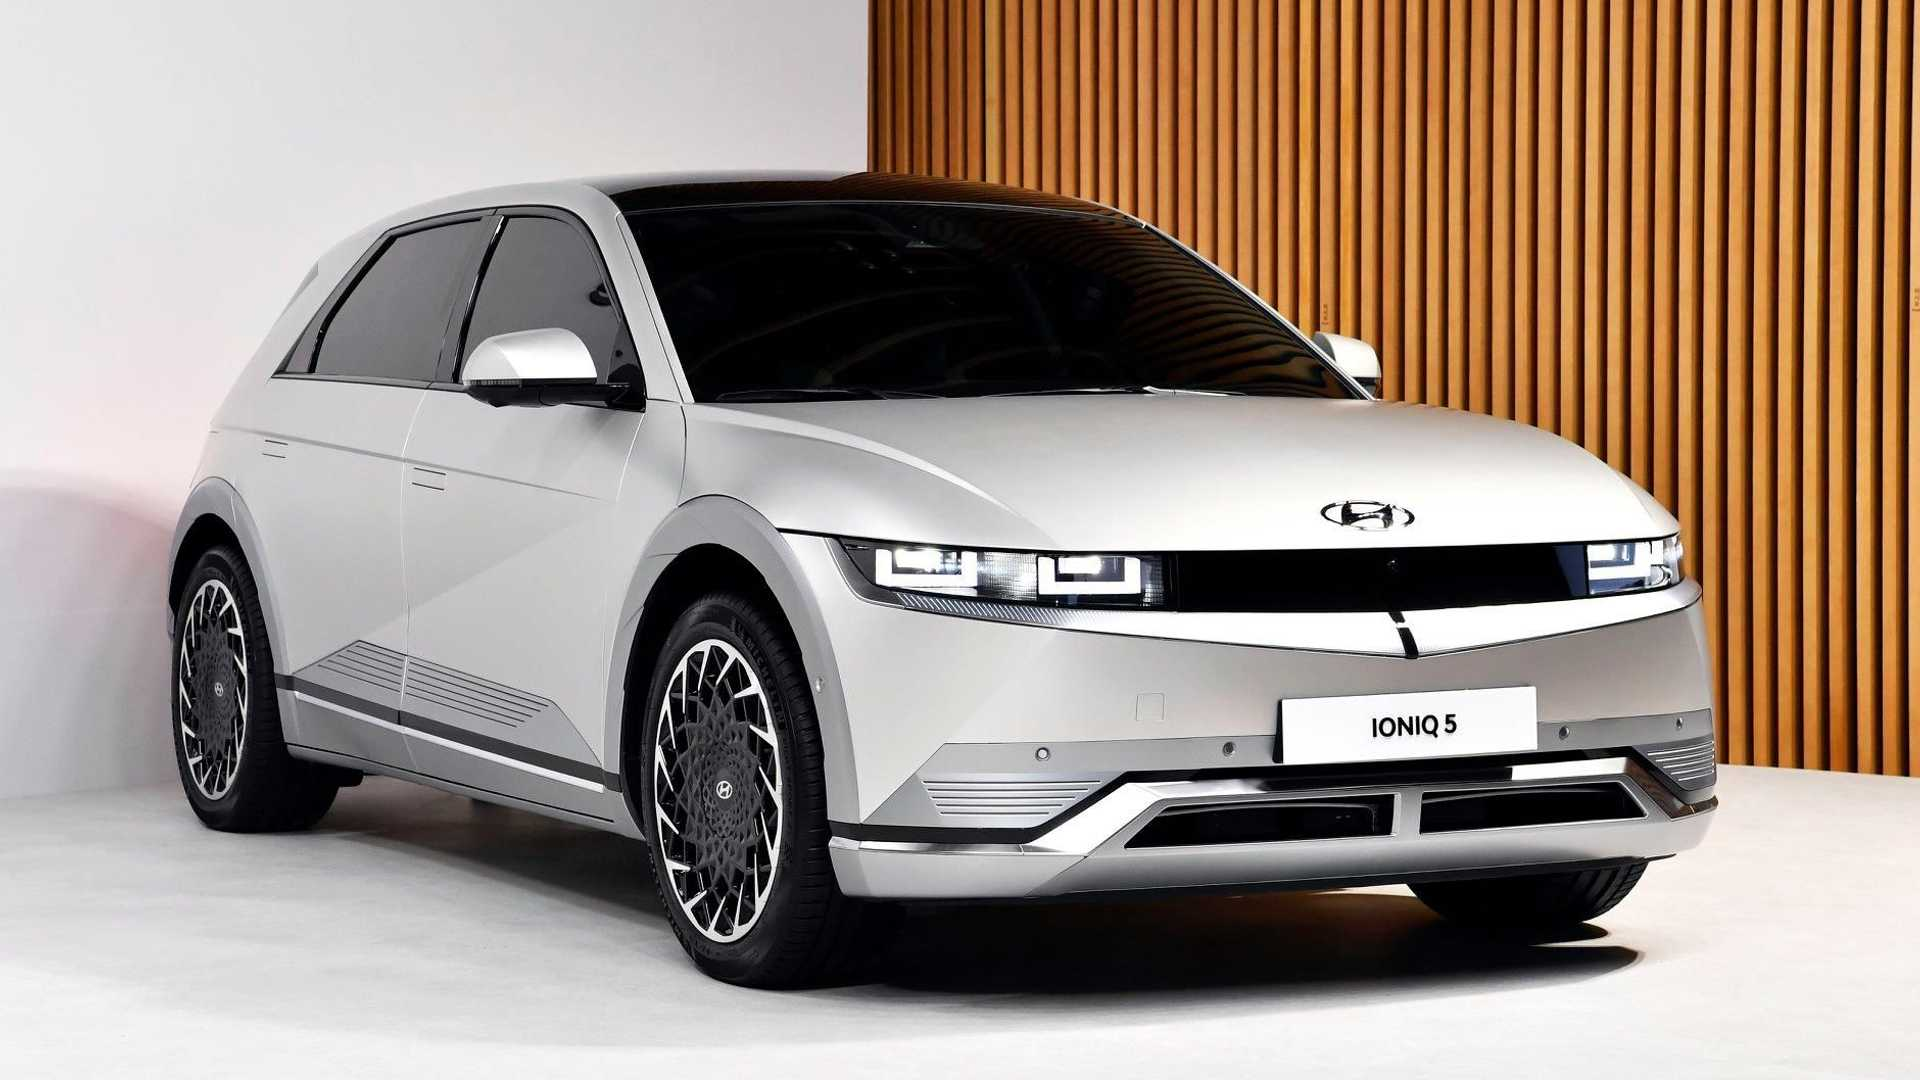 Hyundai unveiled its Ioniq 5 compact electric SUV in Europe in February, and will be bringing the model to the USA on May 24, 2021. Here are some of its specifications.